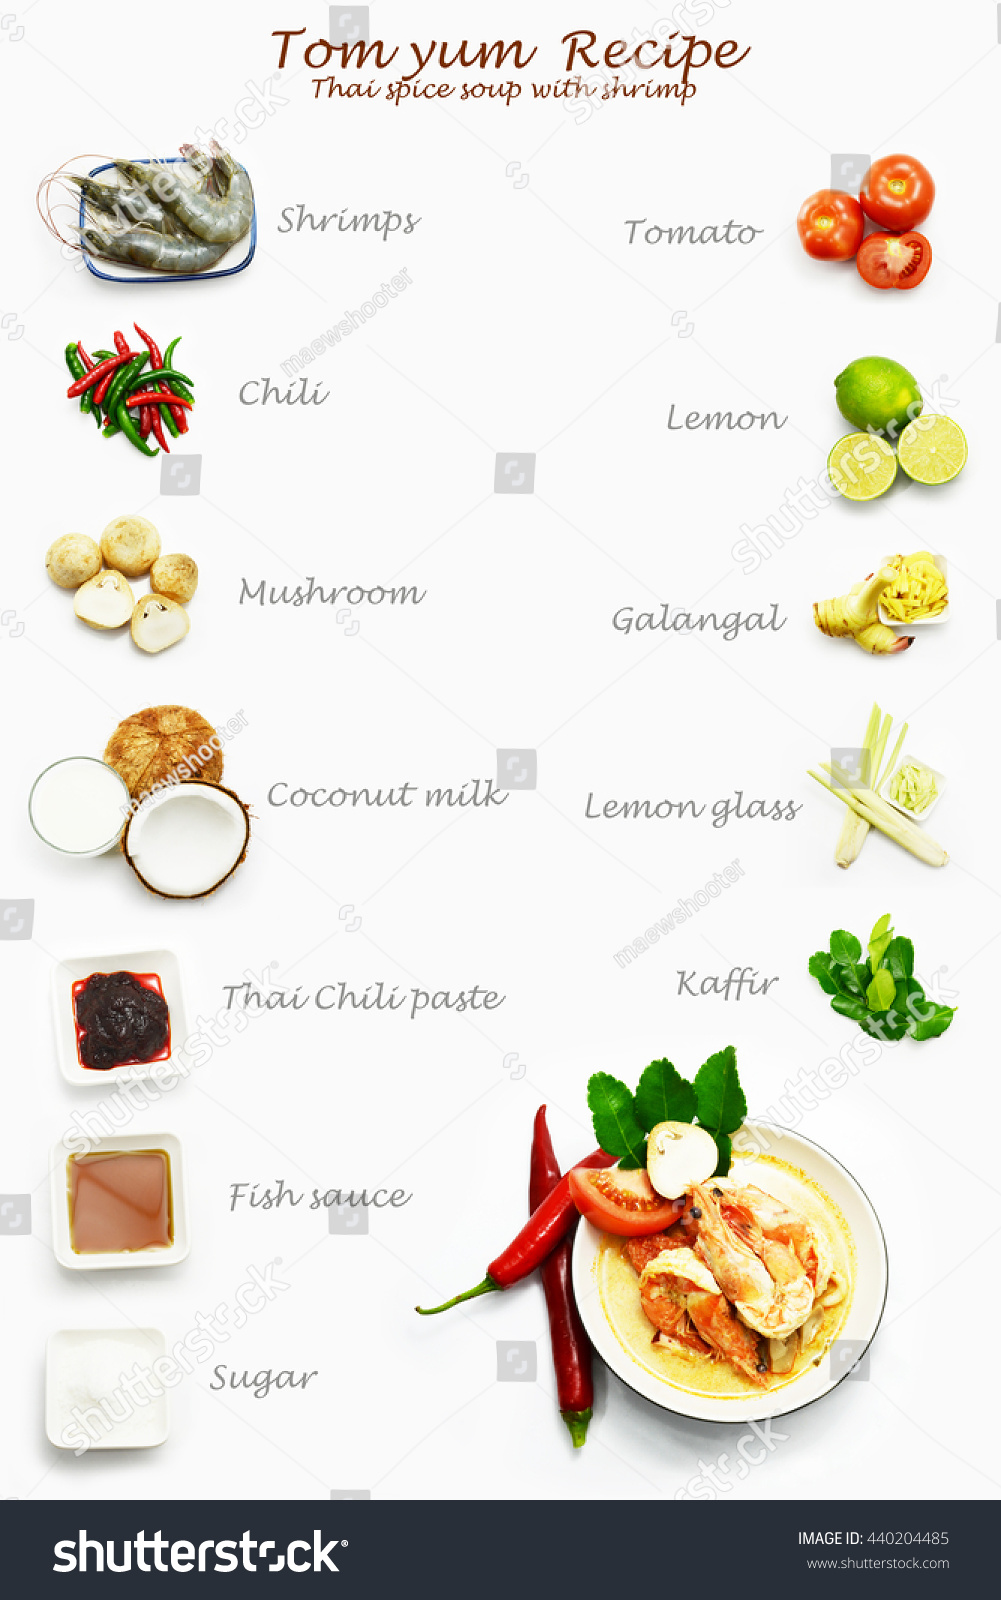 Recipe Thai Food Tom Yum Thai Stock Photo (Safe to Use) 440204485 ...